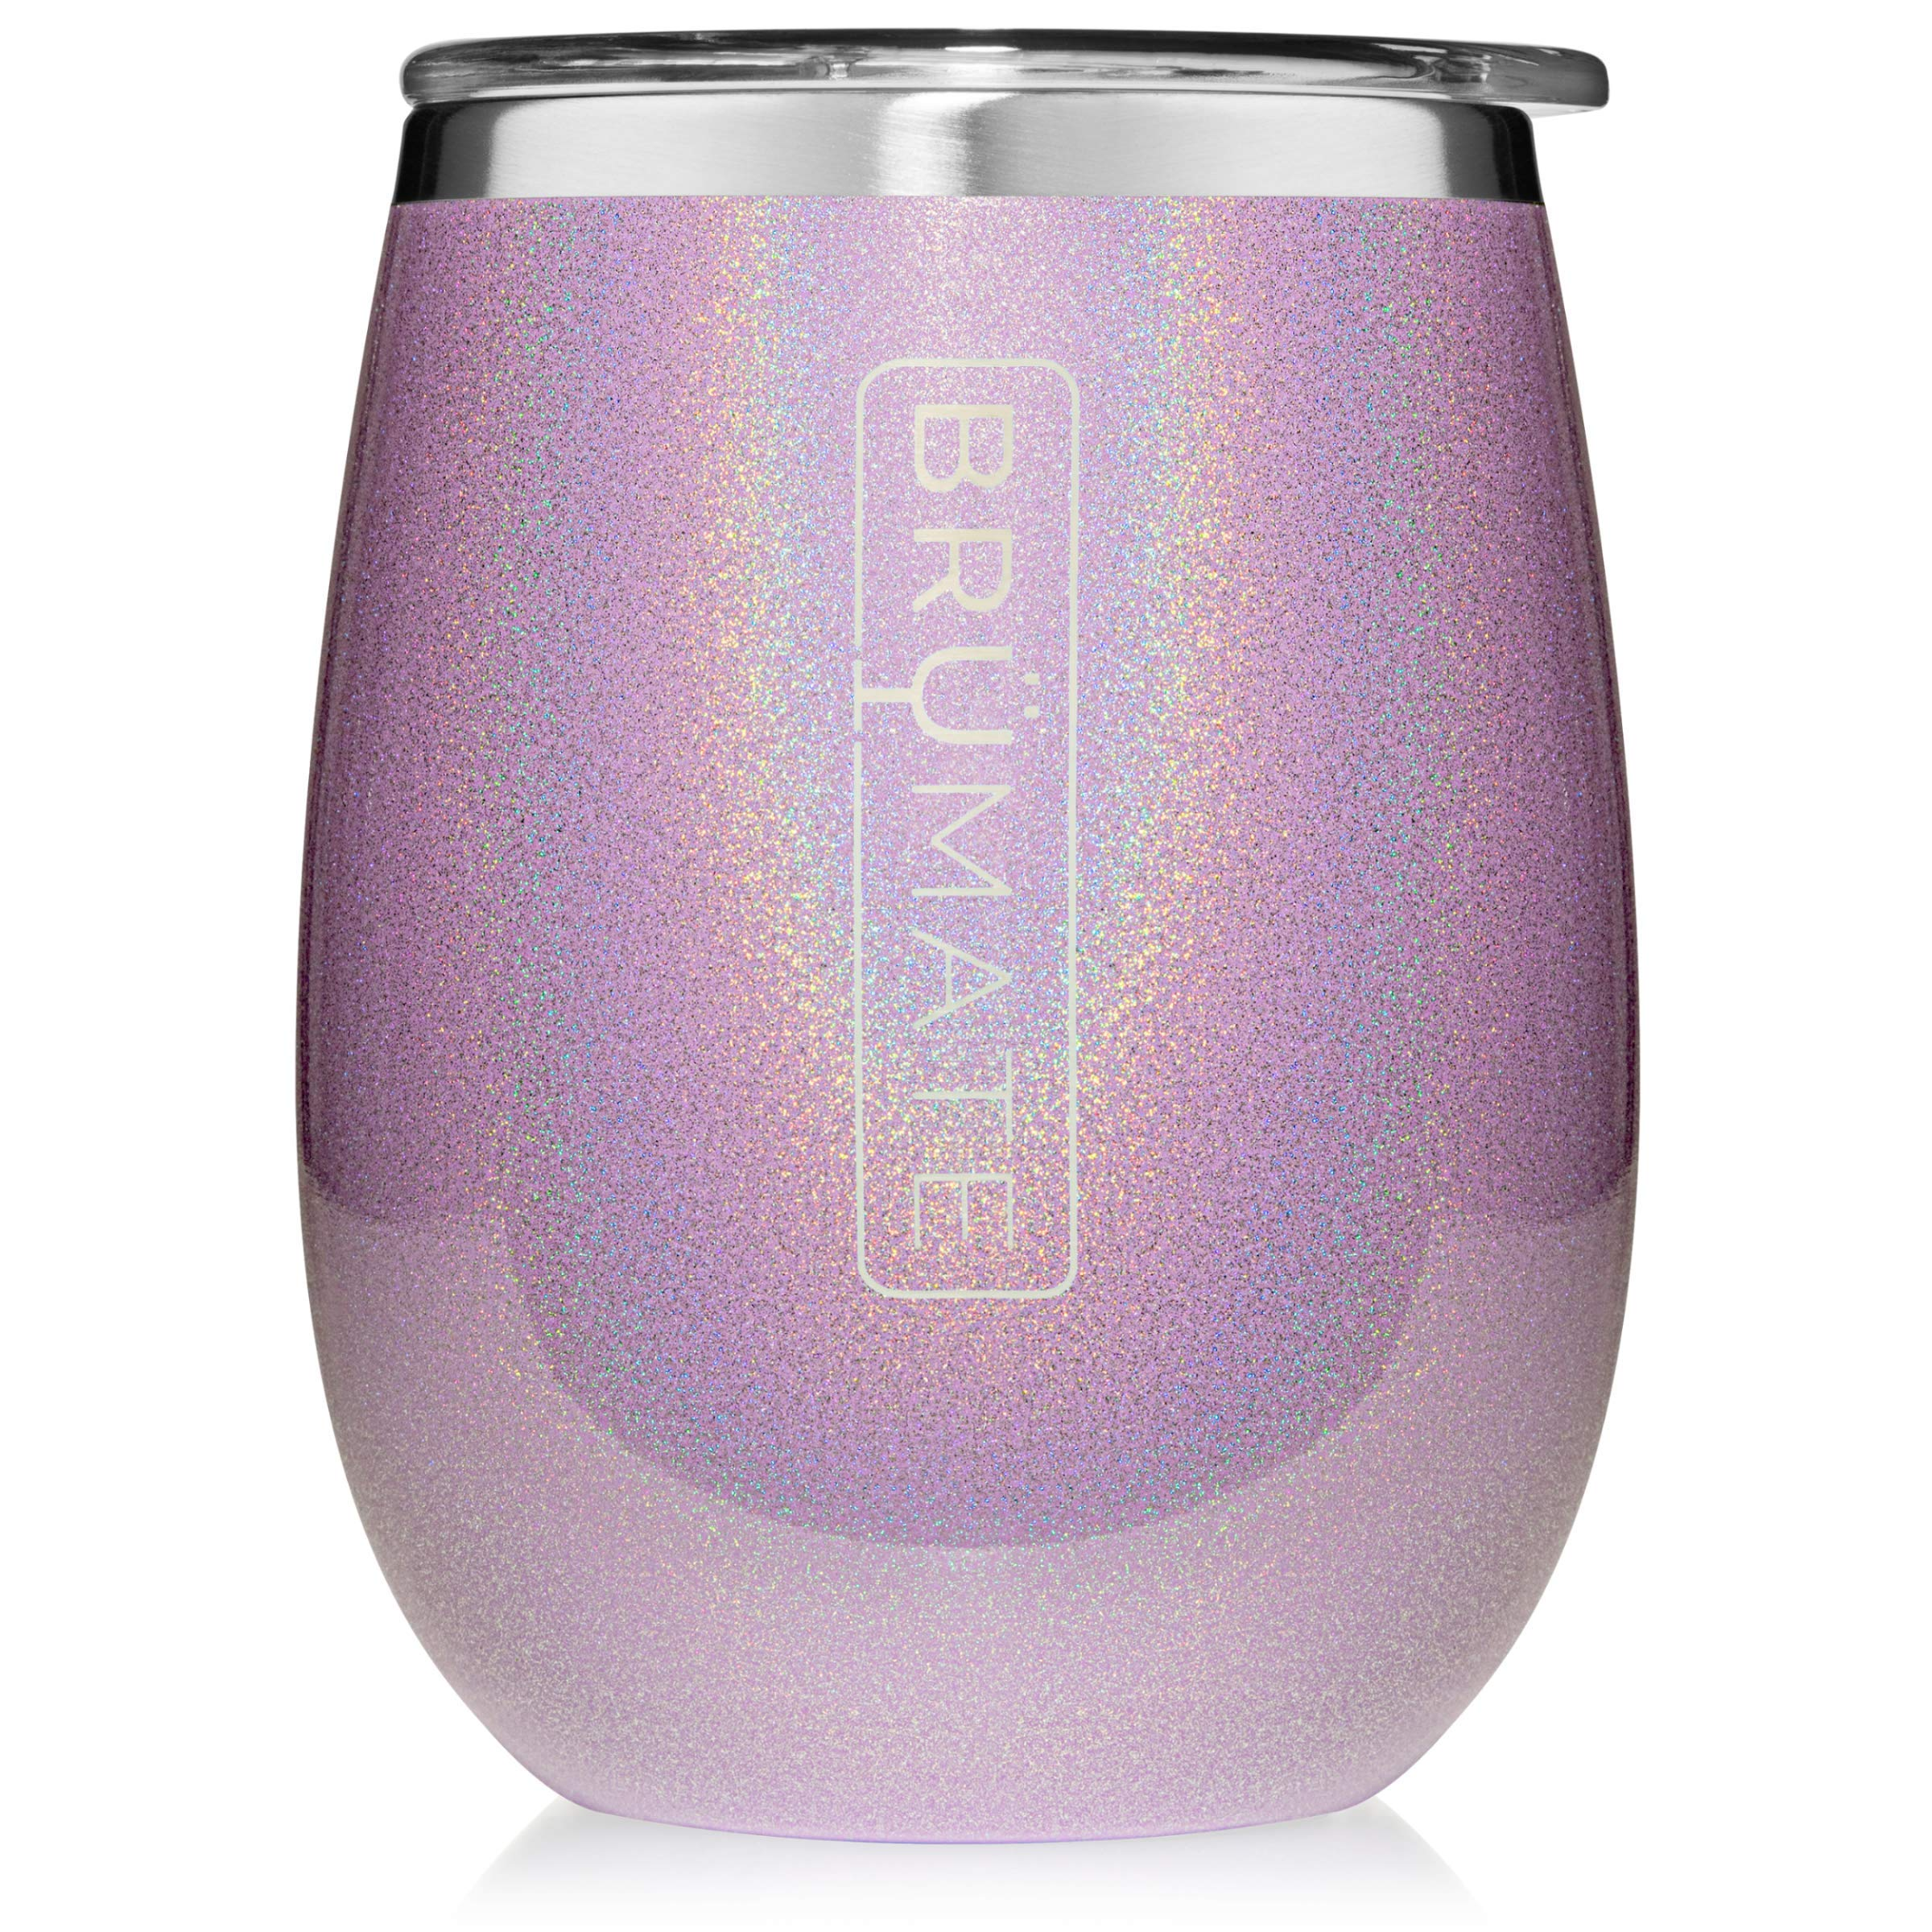 BrüMate Uncork'd XL 14oz Wine Glass Tumbler With Splash-proof Lid - Made With Vacuum Insulated Stainless Steel (Glitter Violet)